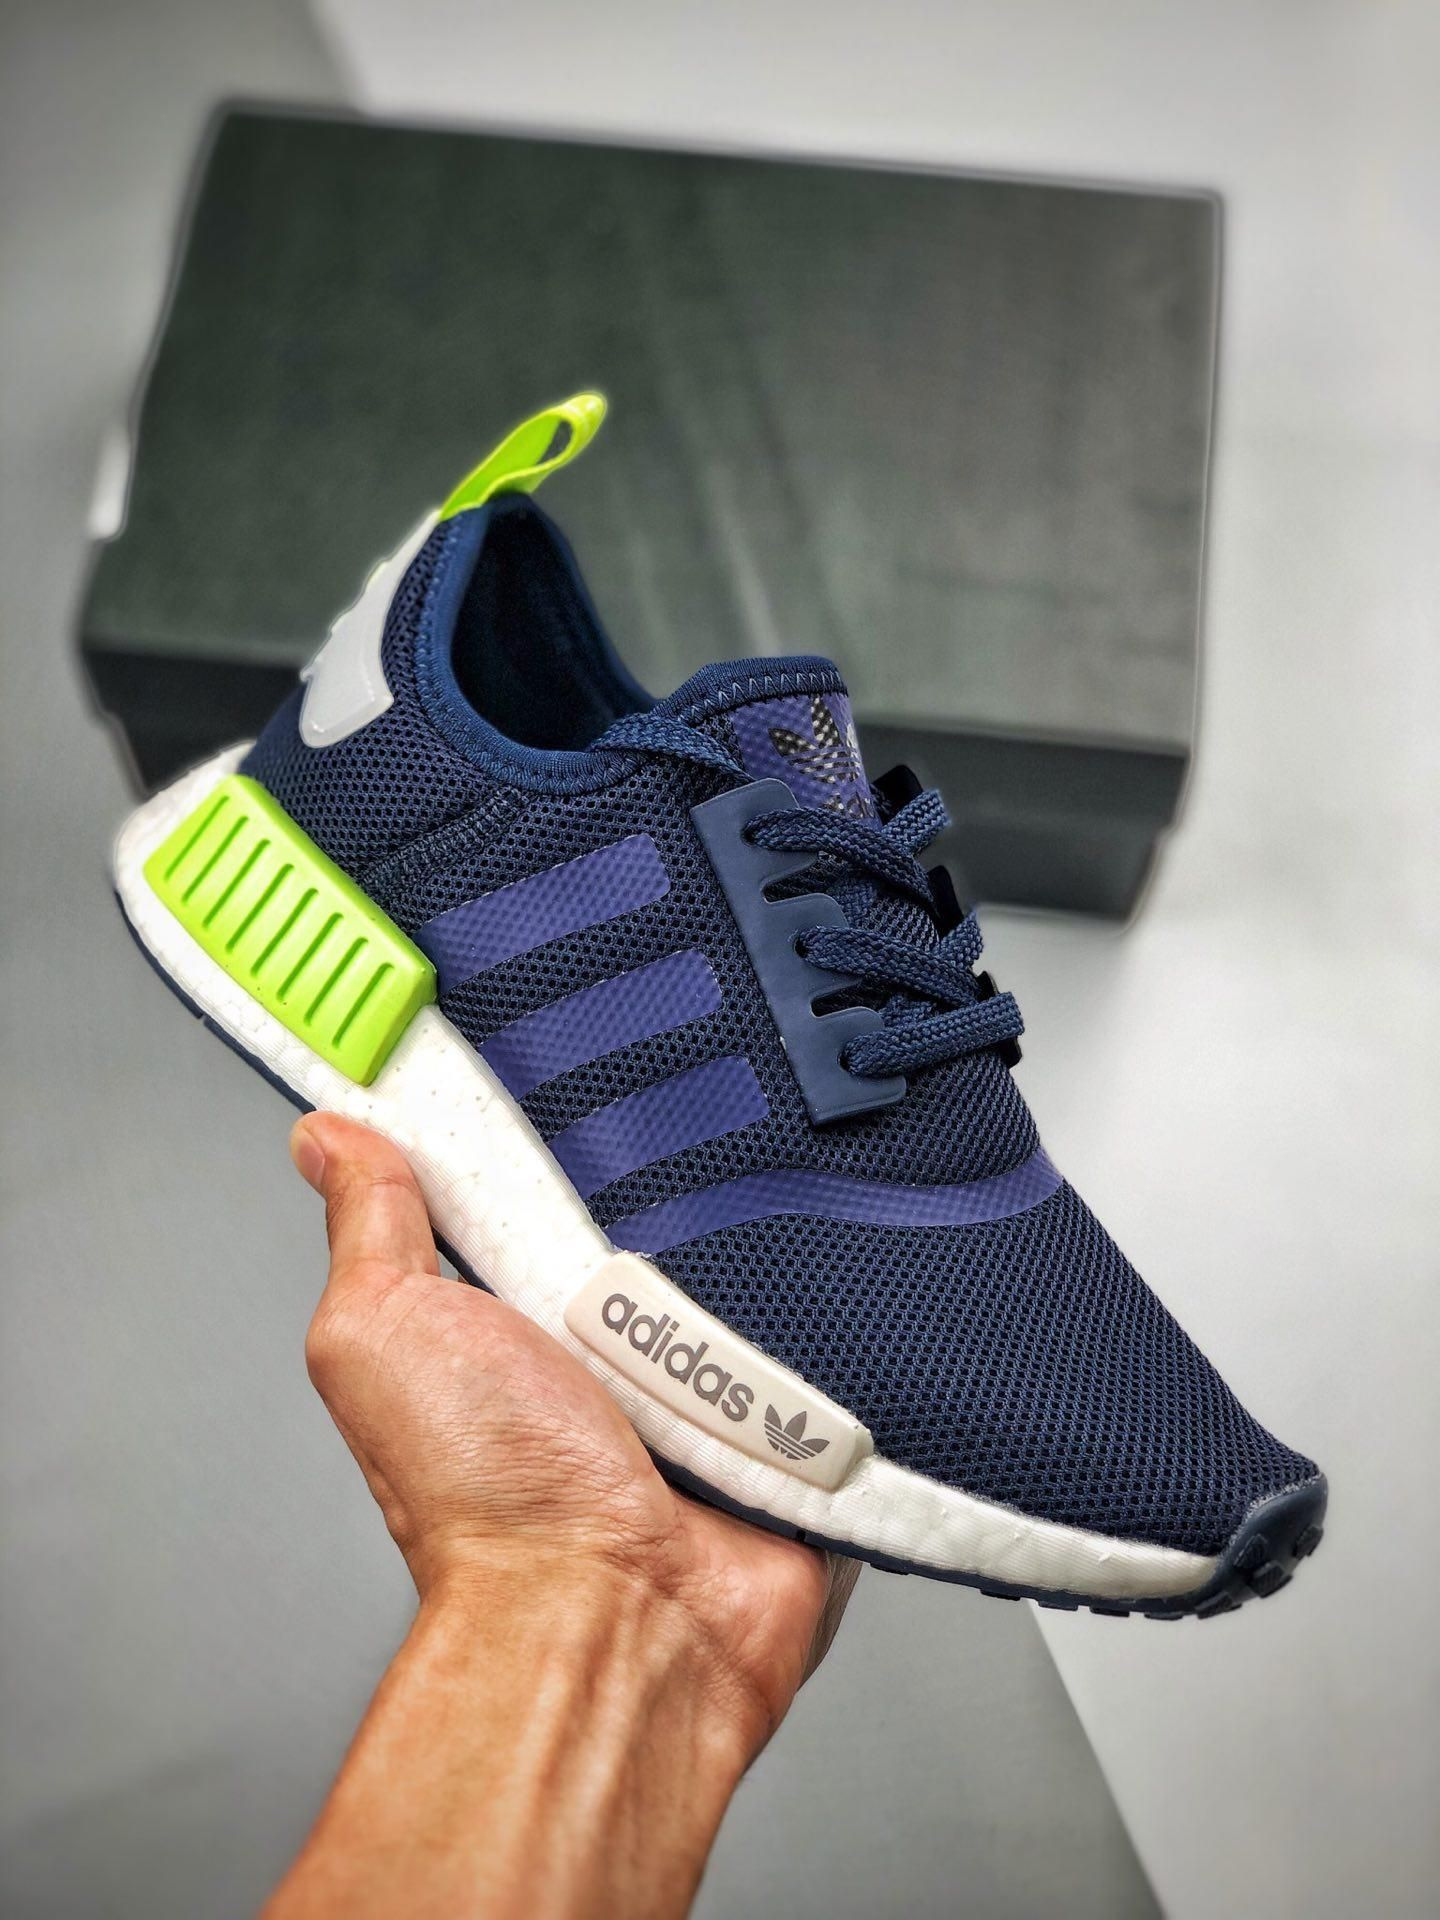 Adidas Nmd Boost Cg6982 With Images